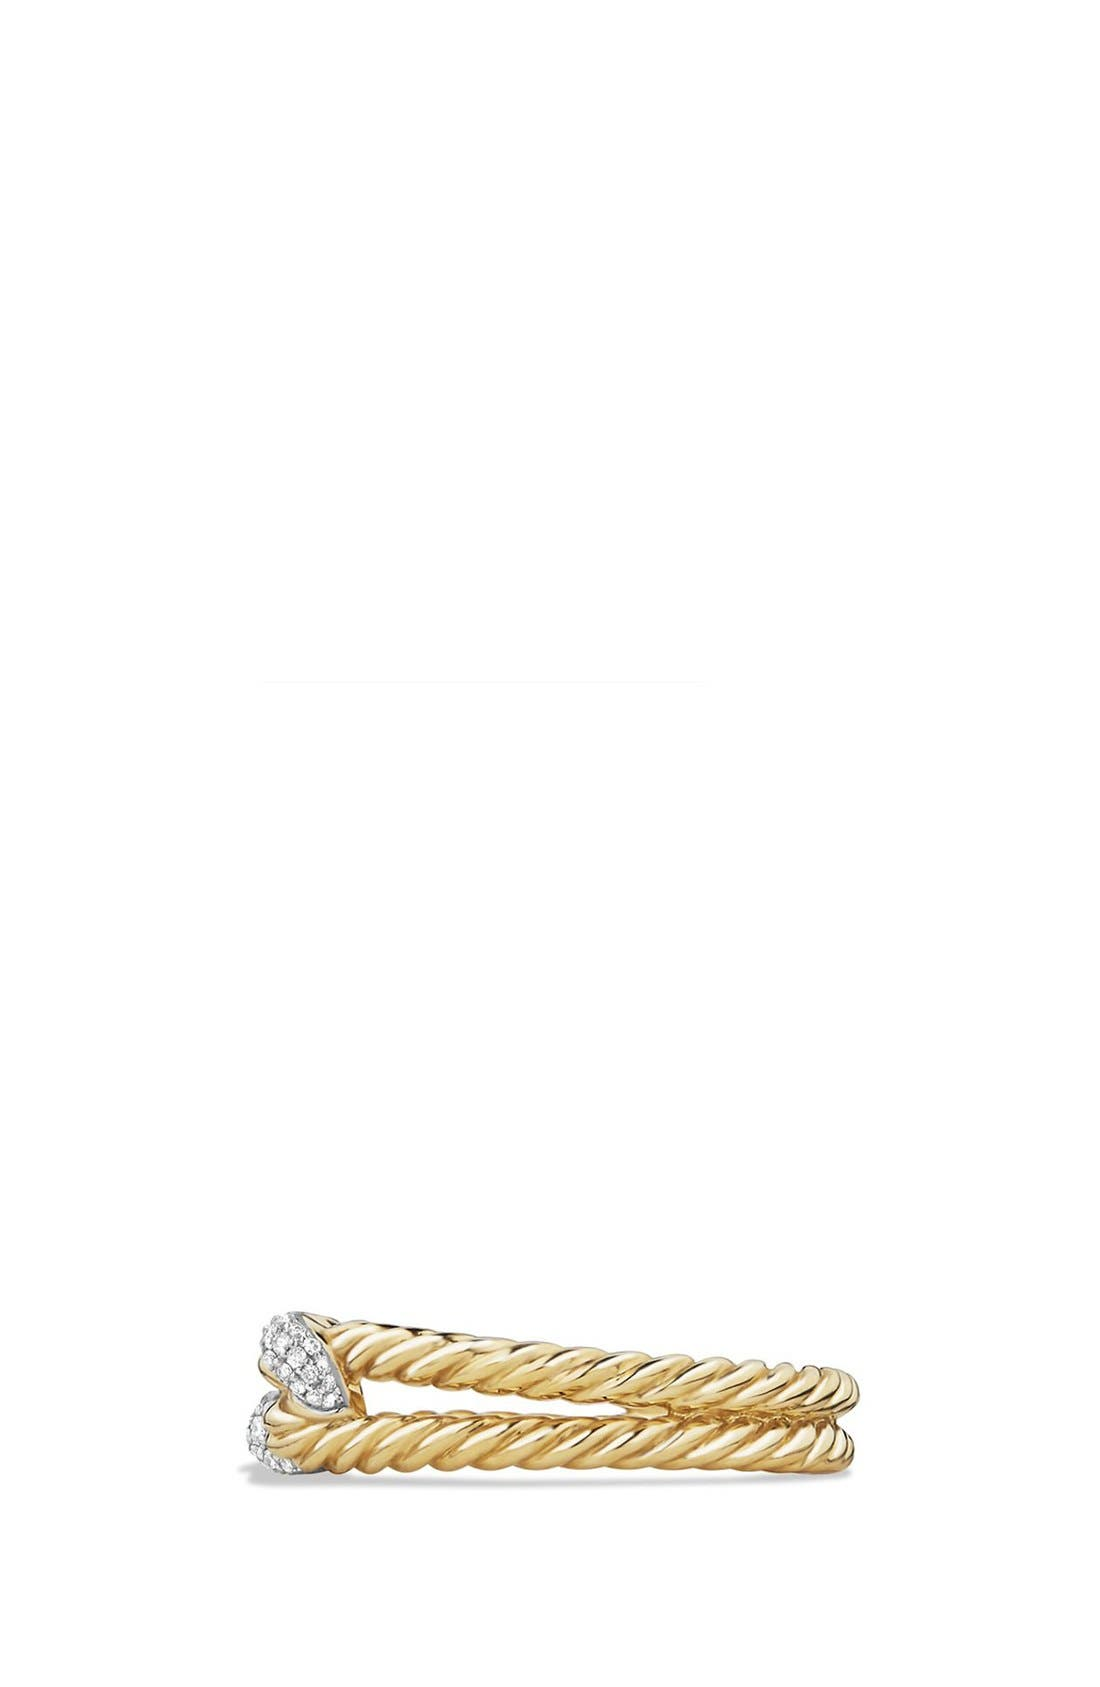 'Petite Pavé' Loop Ring with Diamonds in 18K Gold,                             Alternate thumbnail 3, color,                             GOLD